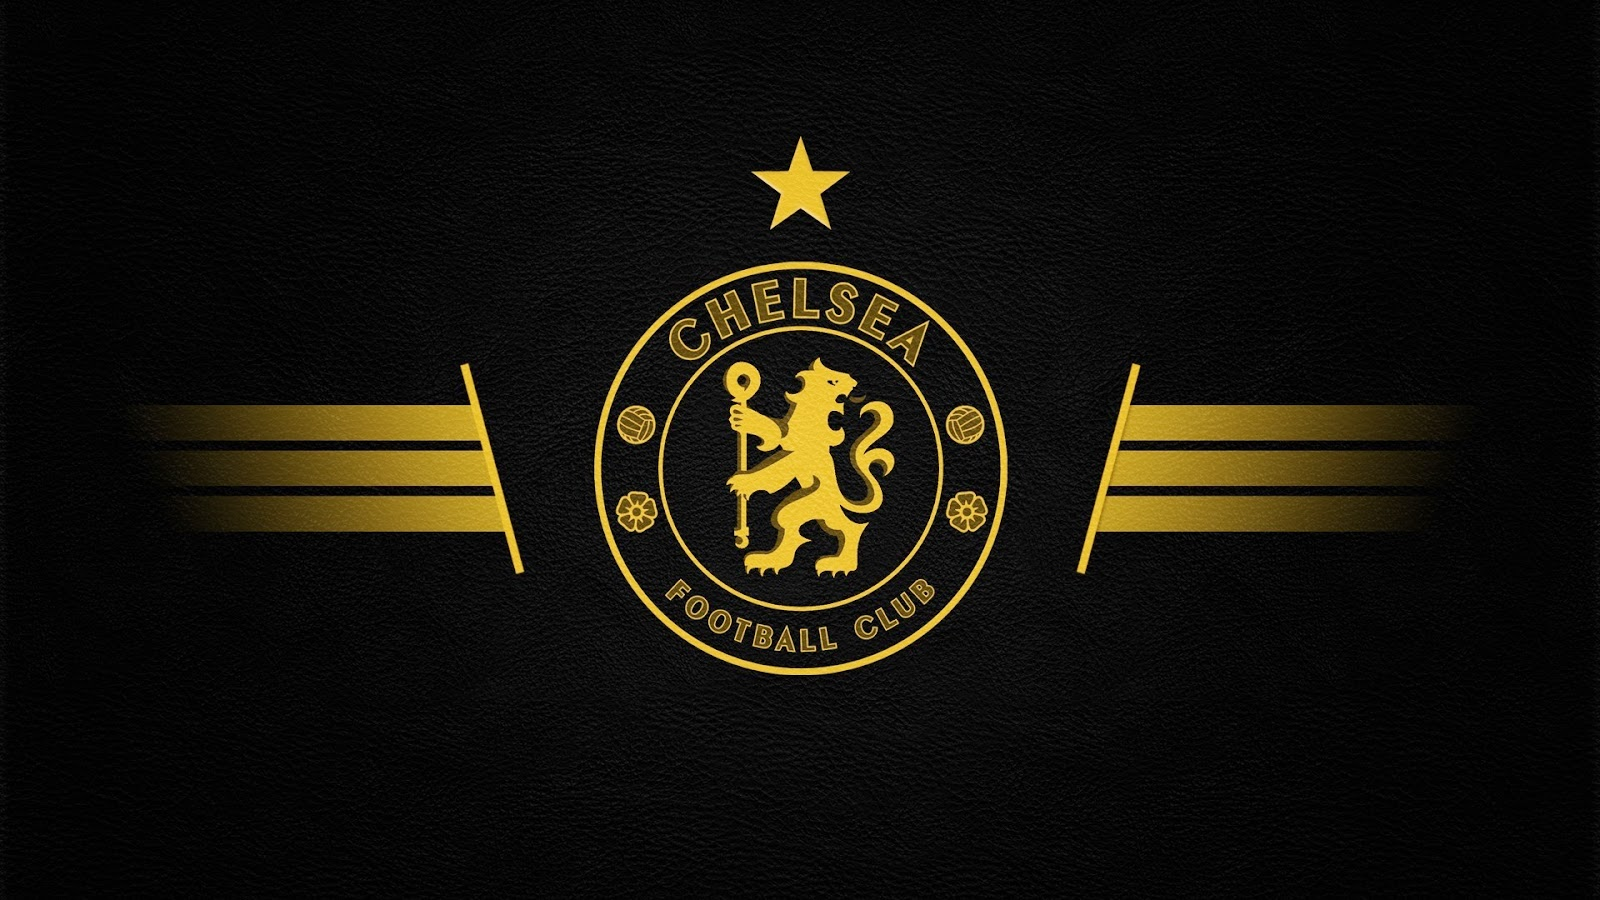 Football: Chelsea Football Club HD Wallpapers